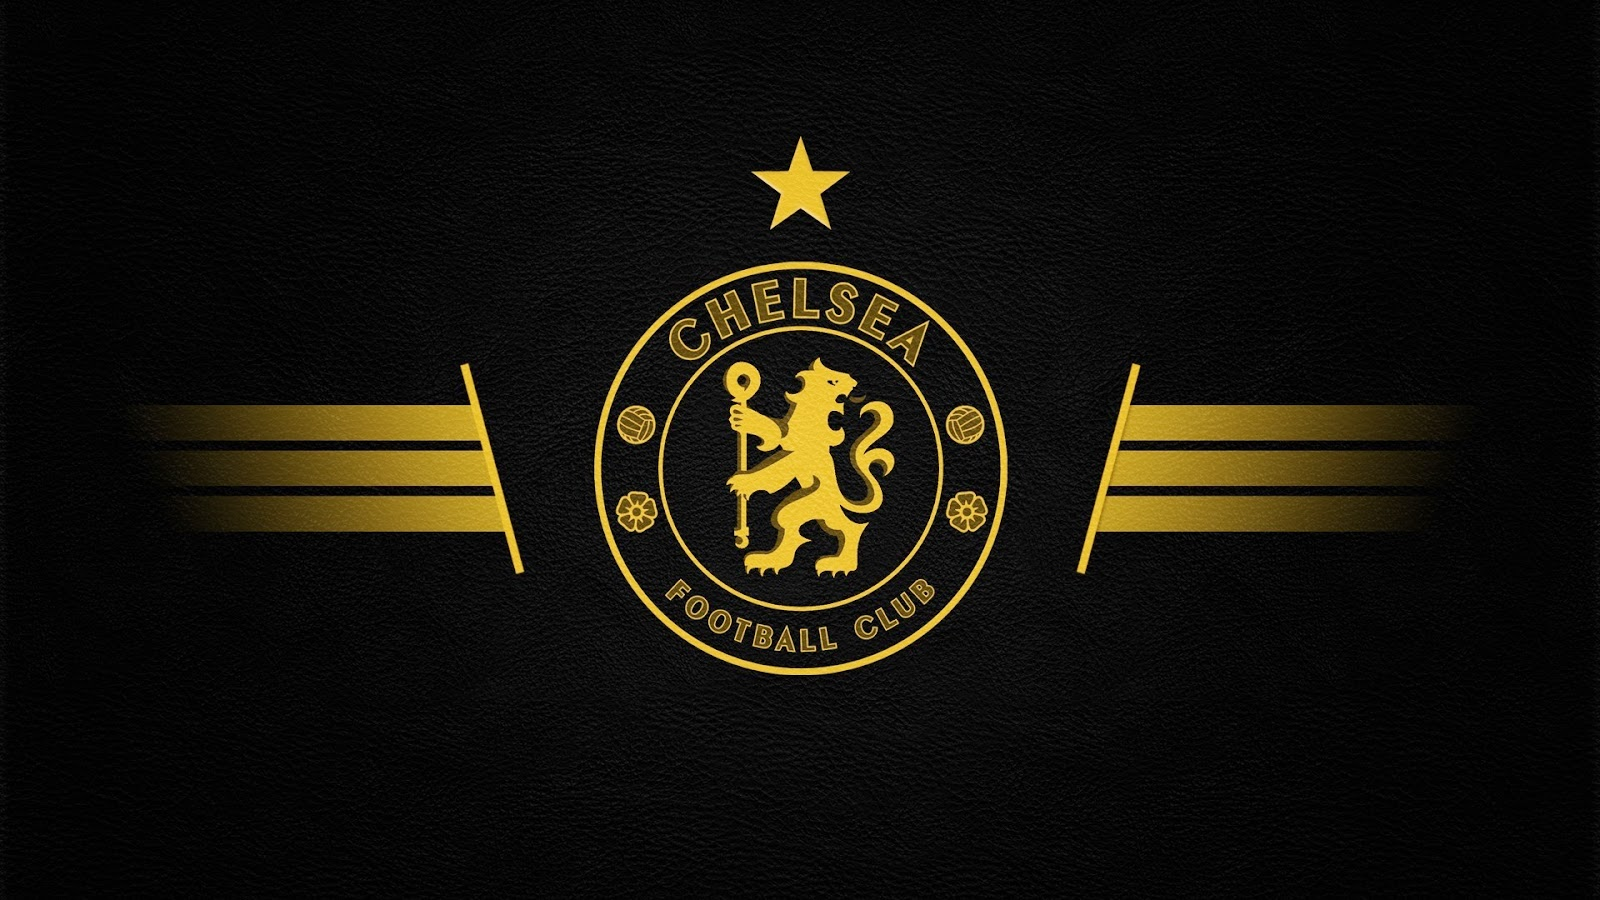 Football: Chelsea Football Club HD Wallpapers